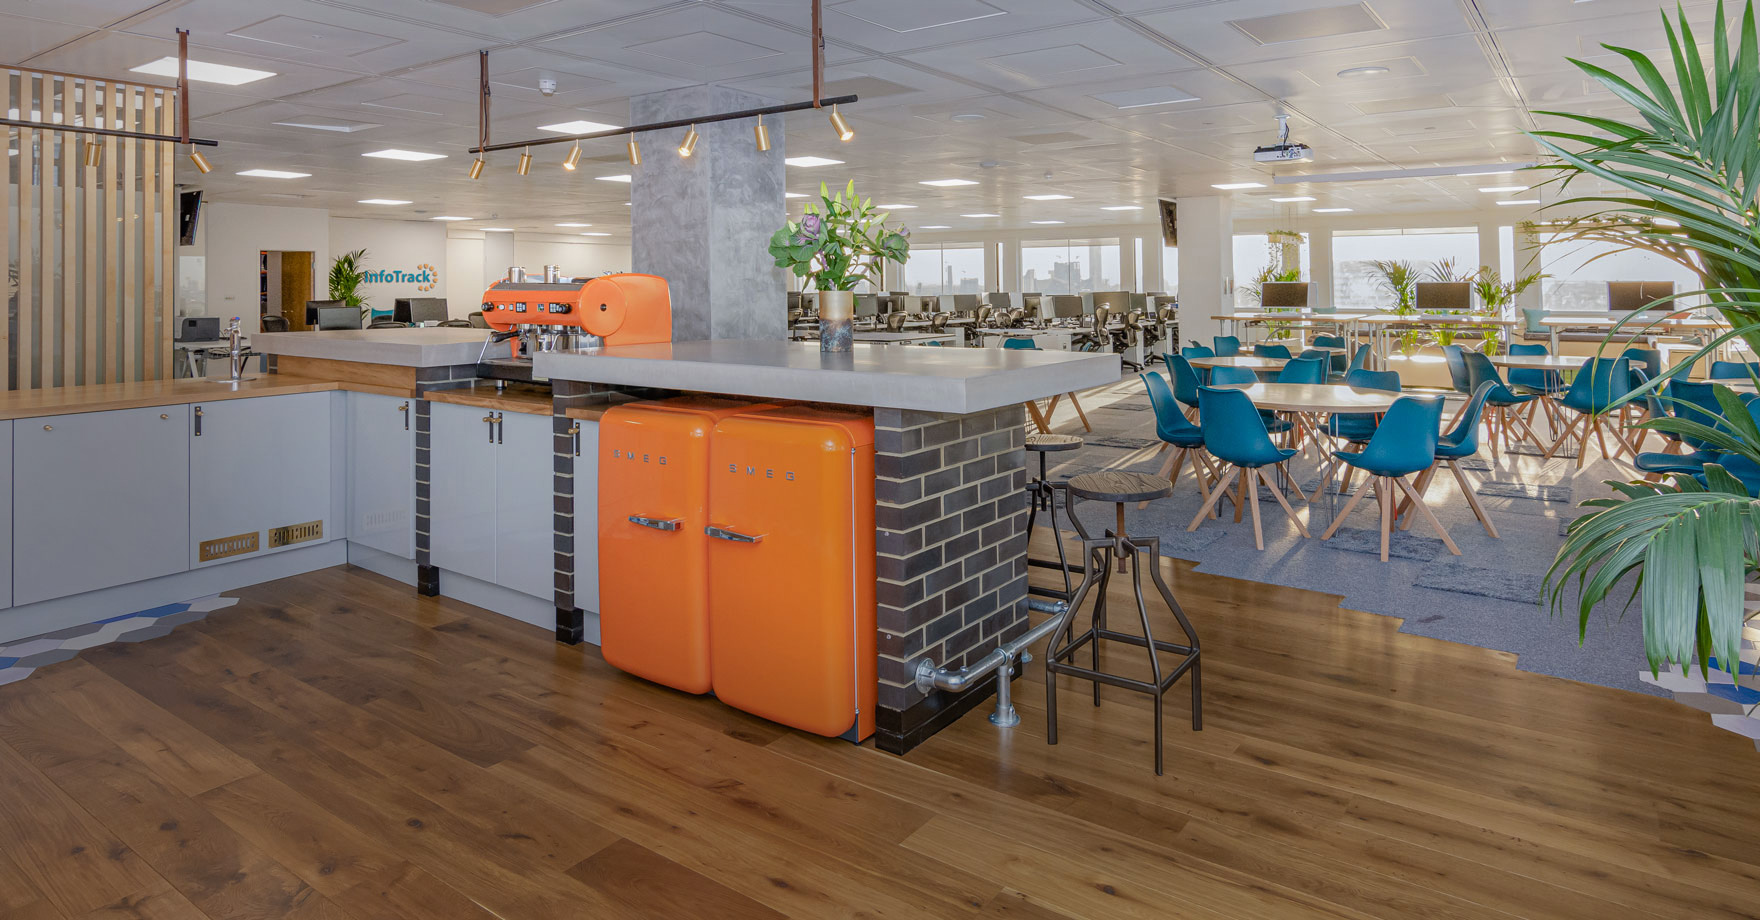 InfoTrack kitchen area and breakout design with Smeg orange appliances and in the background is the rest of the workspace design